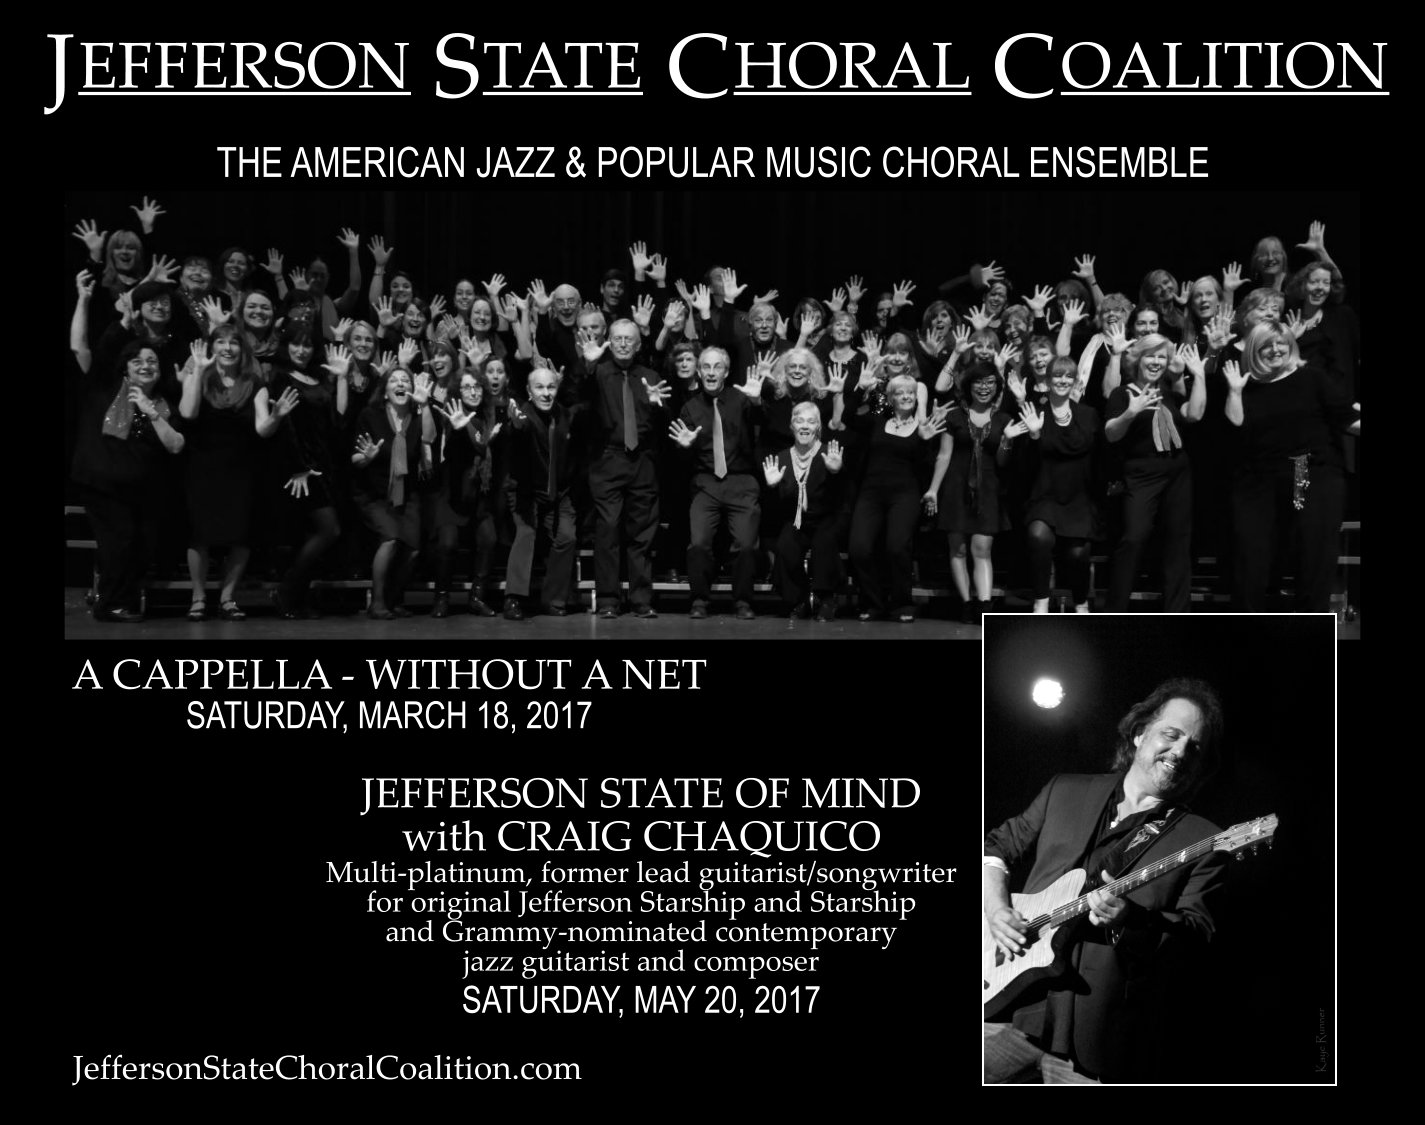 craig-chaquico-jefferson-state-of-mindchoral-coalition-ad-hi-res-2017